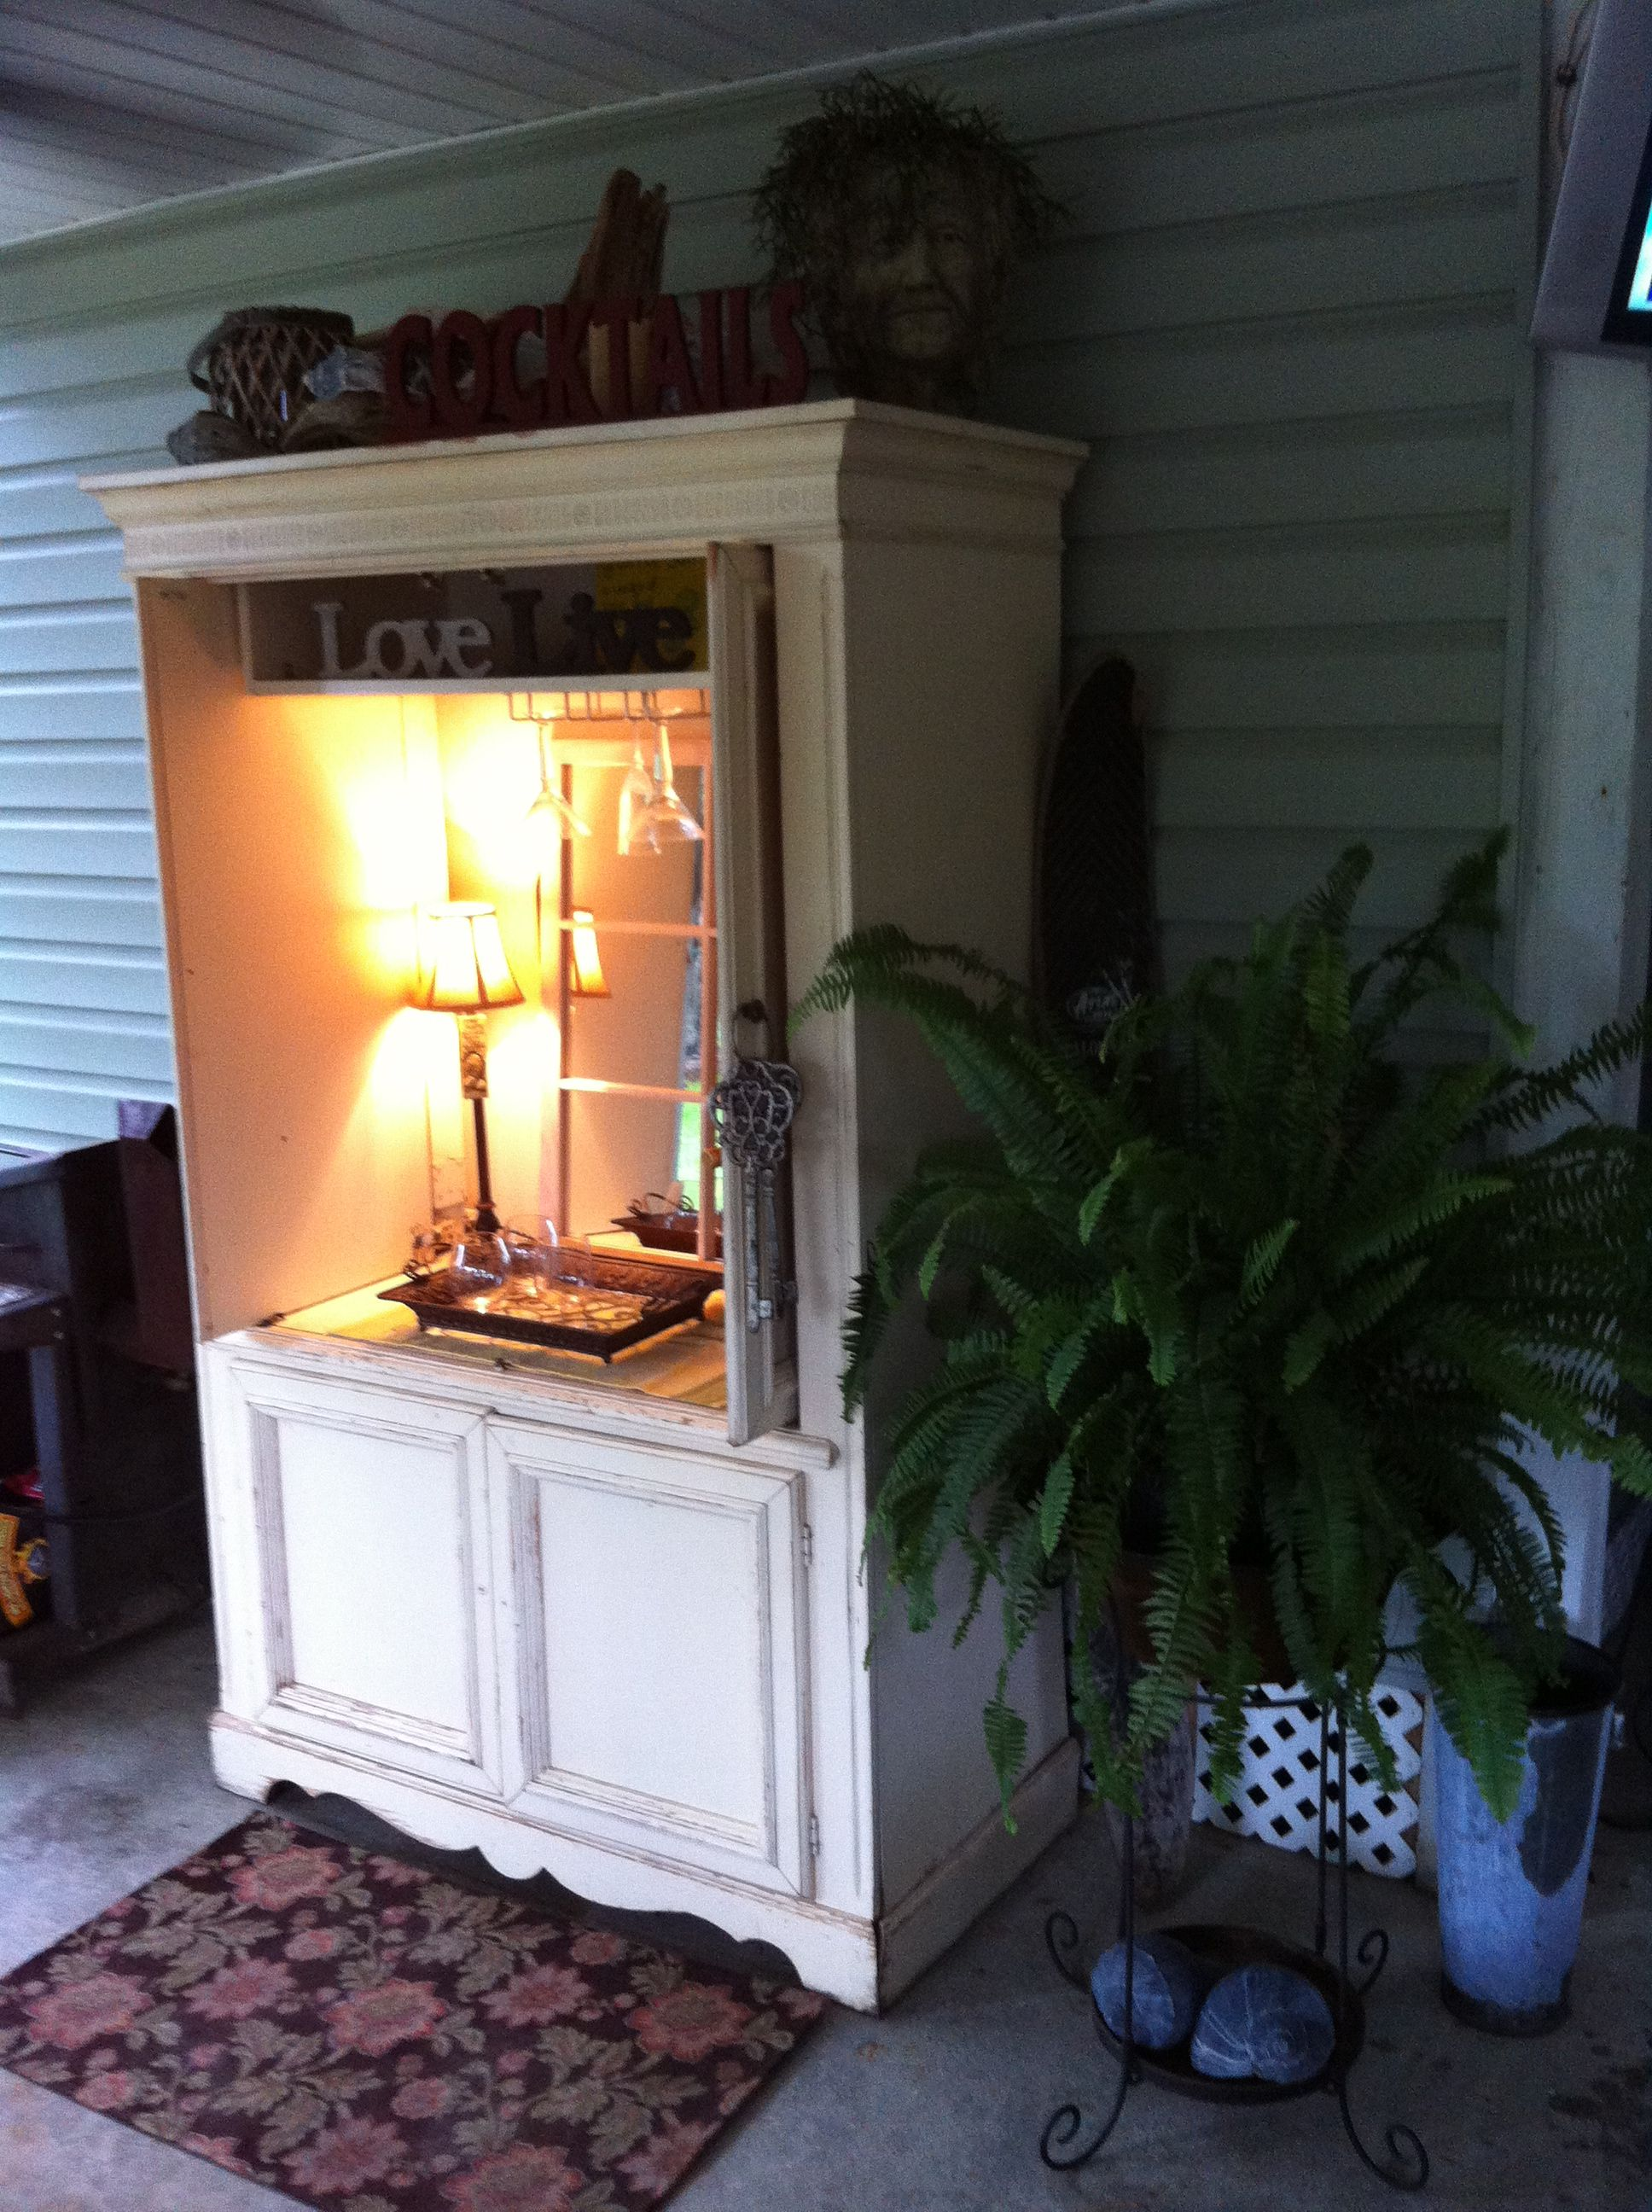 Ordinaire Repurpose An Old TV Armoire Into A Great Outdoor Piece! Perfect For Mini  Bar!